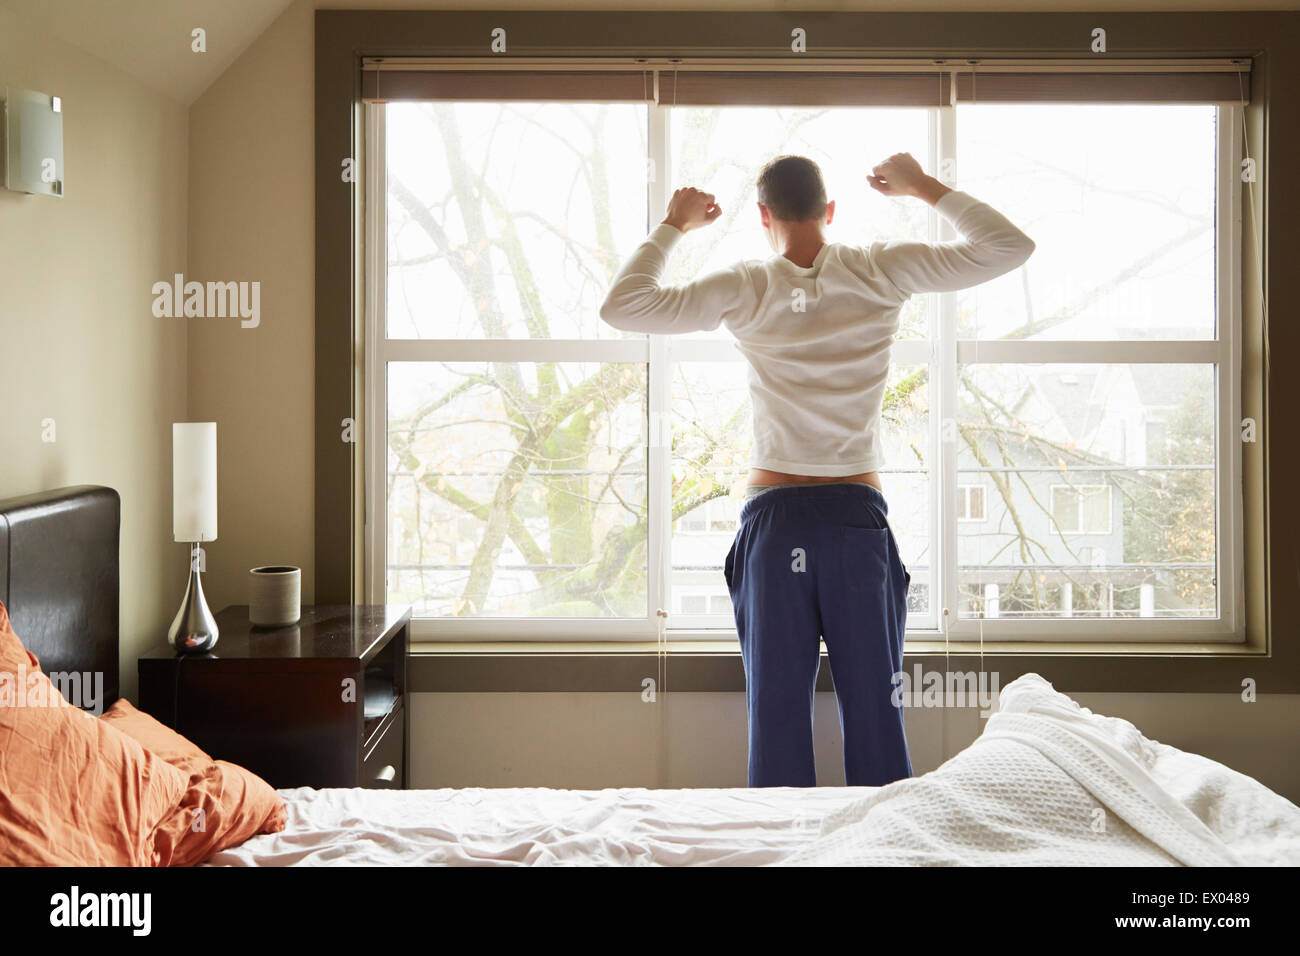 Rear View Of Young Man Stretching In Front Of Bedroom Window Stock Photo Alamy